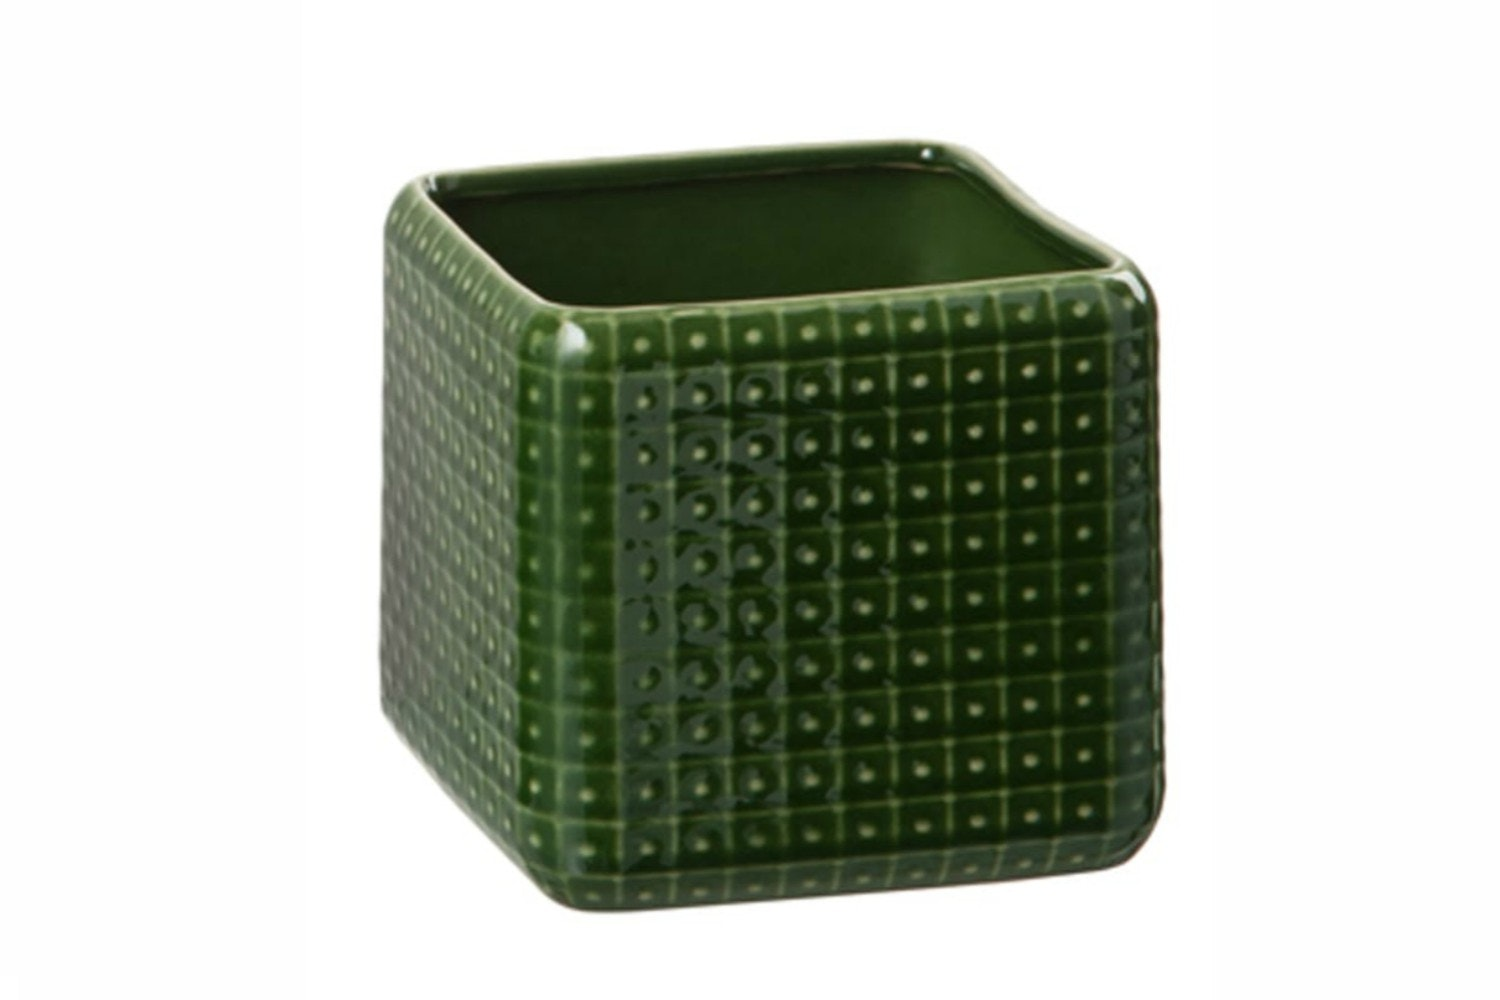 Square Ceramic Flower Pot | Medium